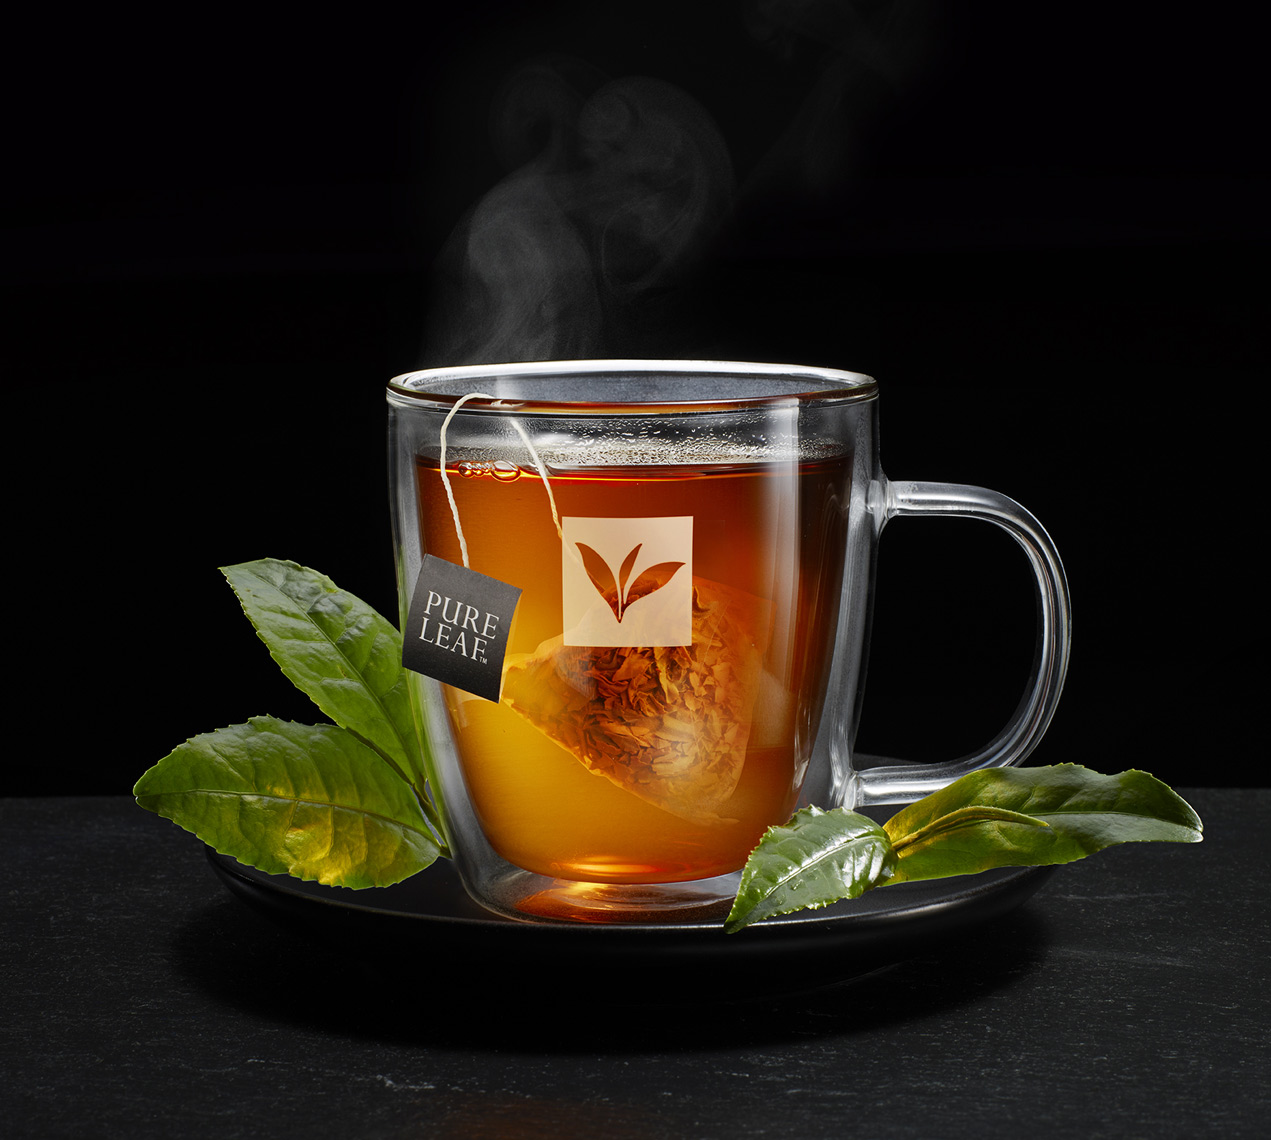 Steaming hot Black Vanilla tea in clear cup